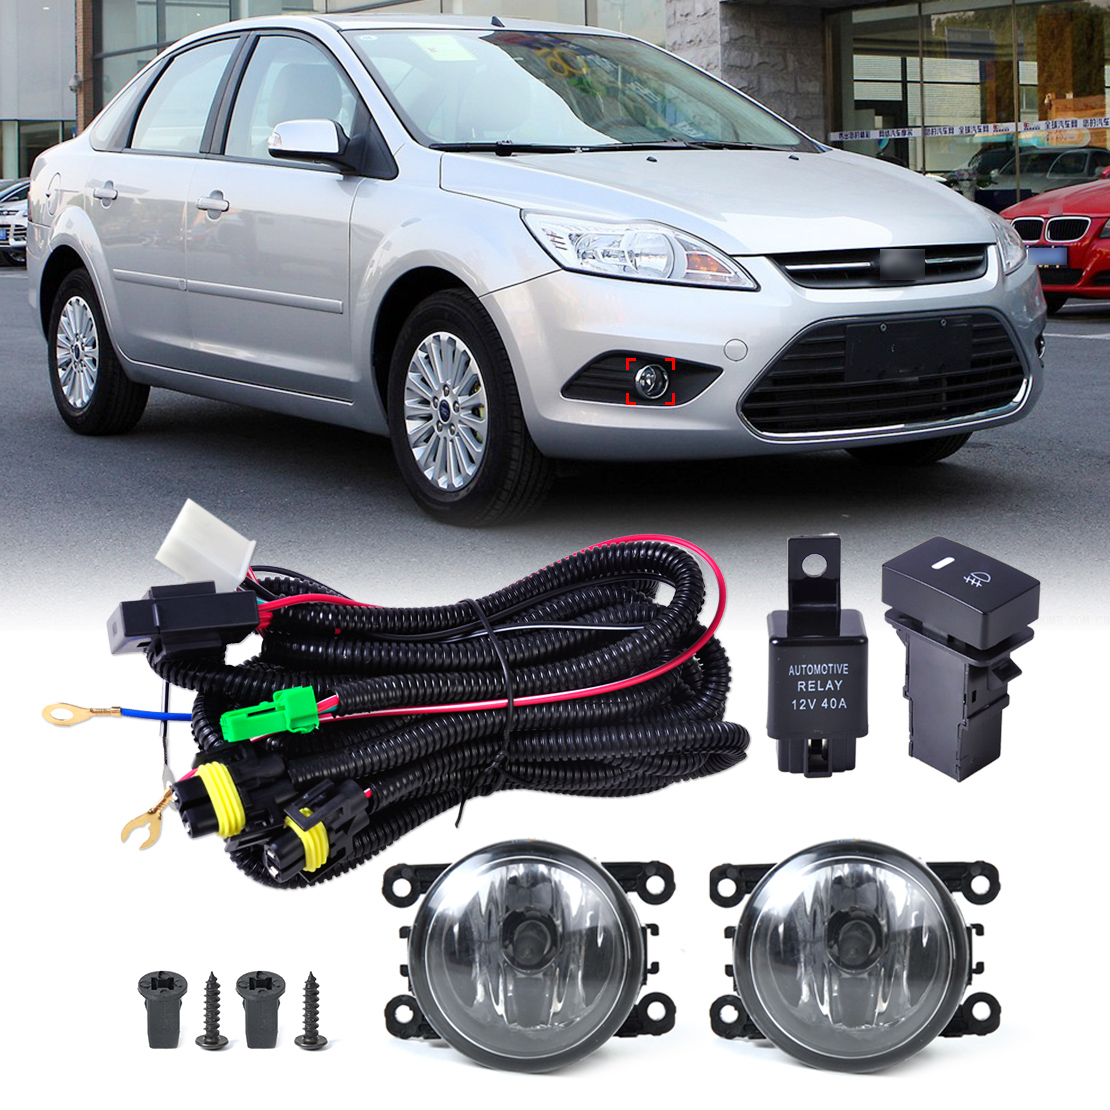 DWCX Wiring Harness Sockets + Switch + 2pcs Fog Lights Lamp 4F9Z-15200-AA for Ford Focus Honda CR-V Acura Nissan Suzuki Subaru set wiring harness sockets wire switch for h11 fog light lamp for ford focus 2008 2014 acura tsx rdx for nissan cube for suzuki